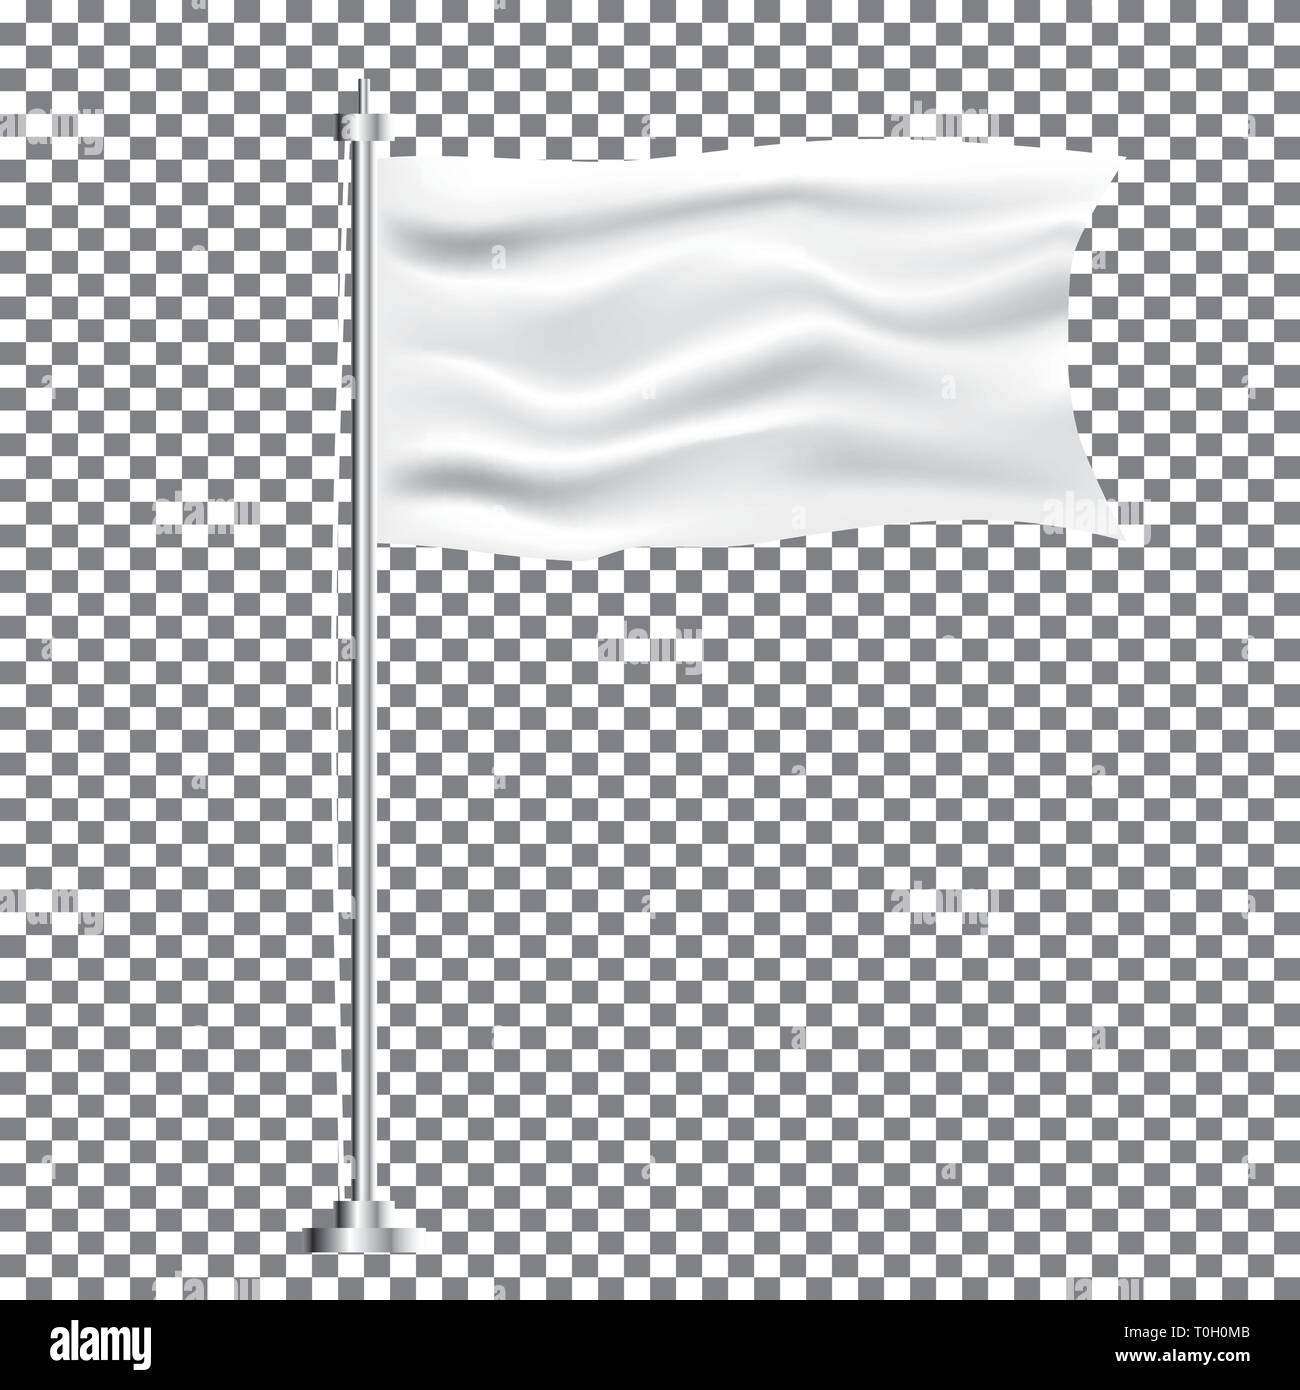 White Textile Waving Empty Flag on Transparent Background. Vector Illustration. - Stock Vector